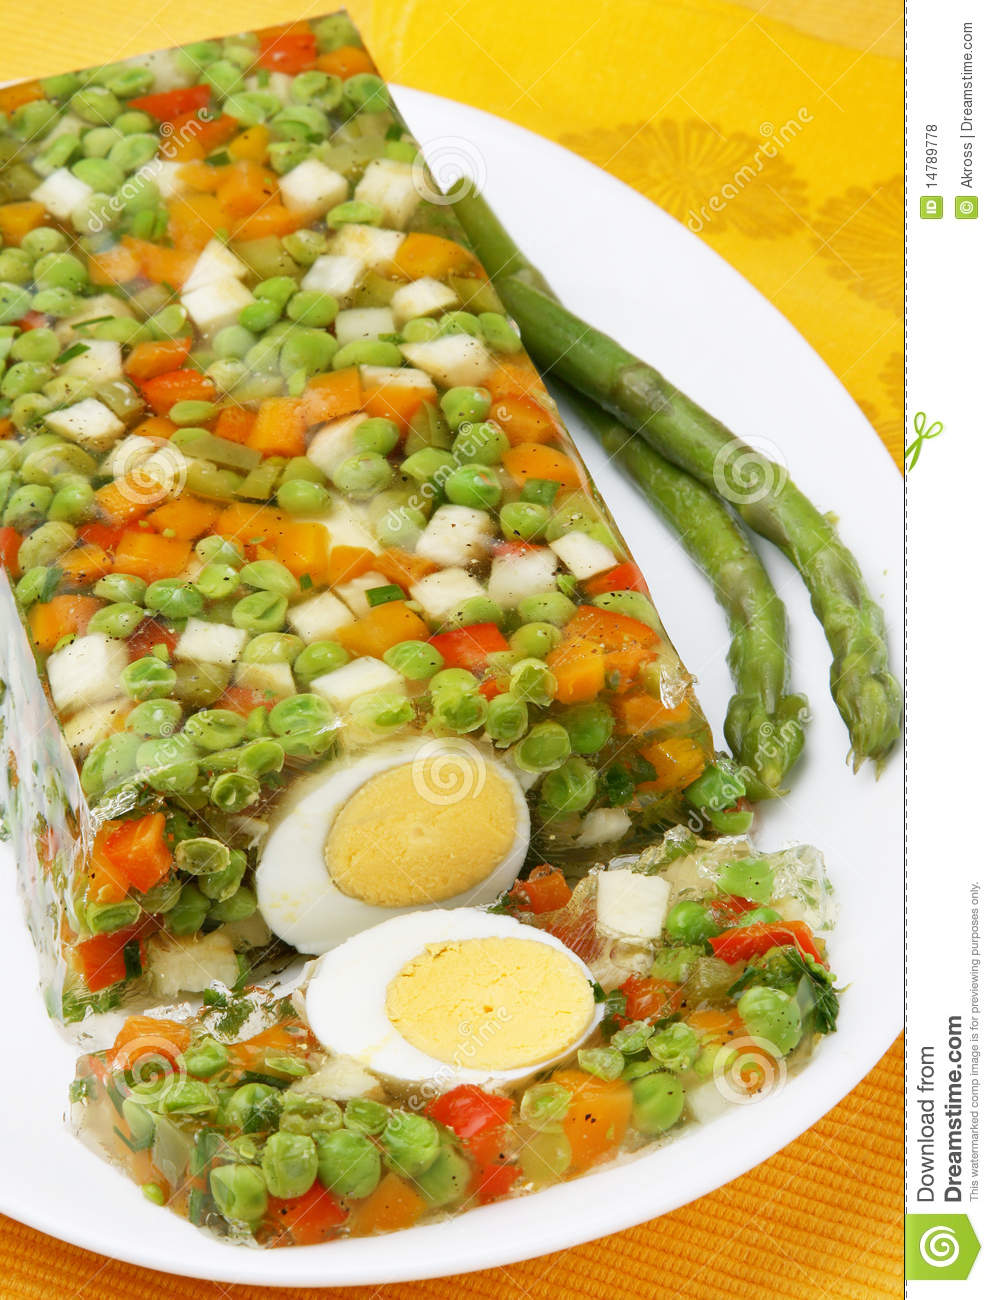 Vegetable aspic stock photo. Image of salad, delicious